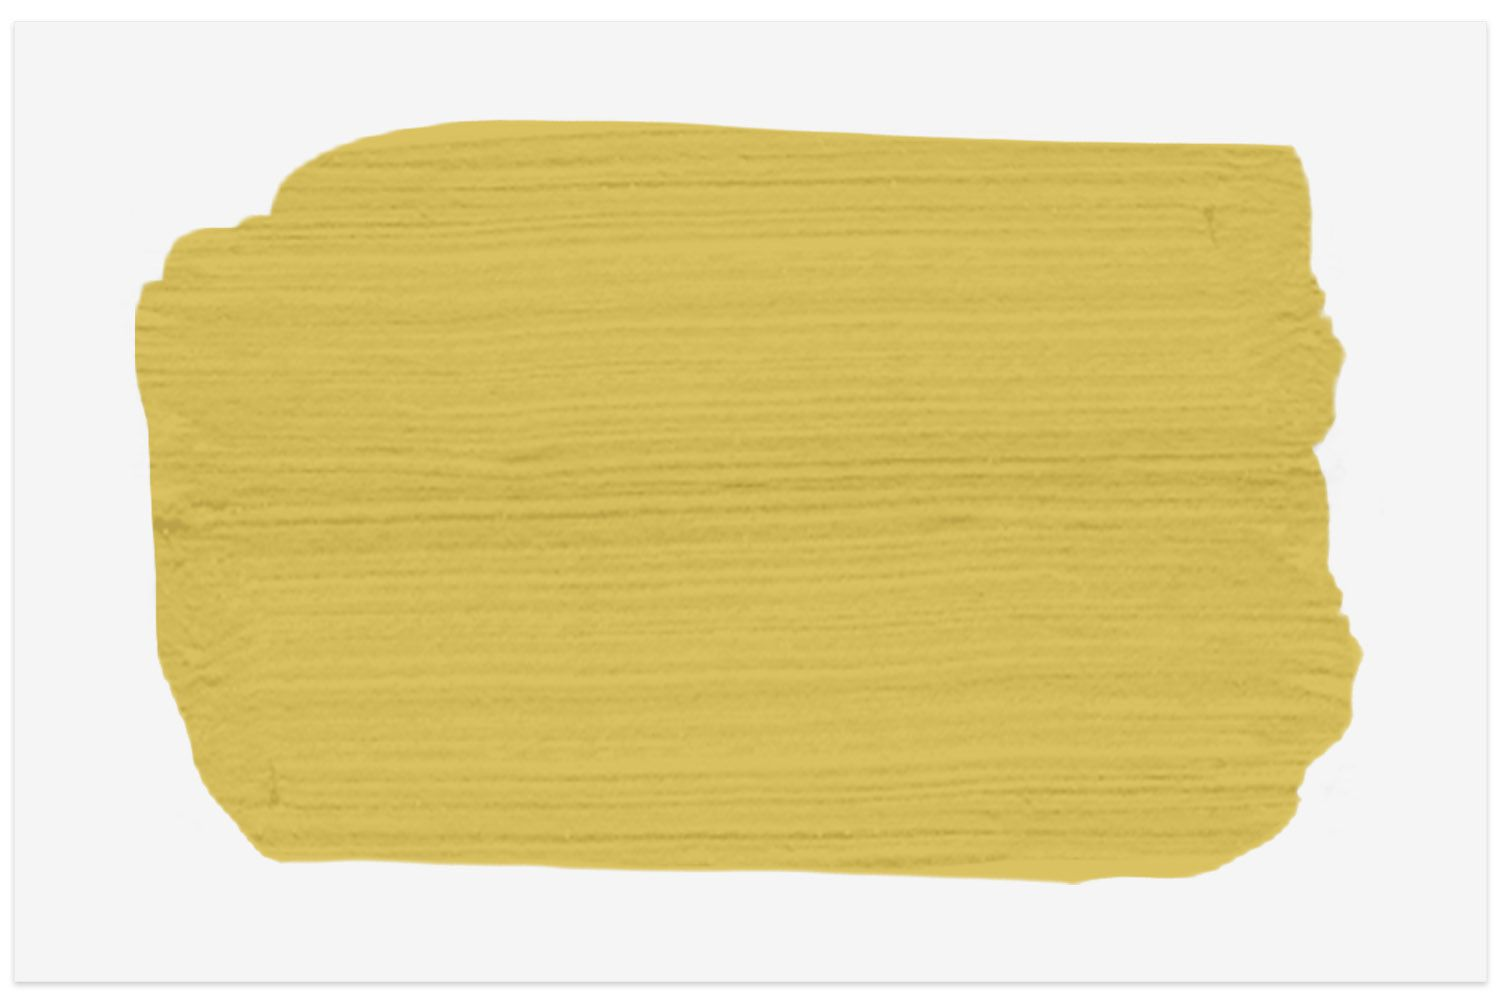 Yellow Mustard Colonial Farmhouse paint swatch